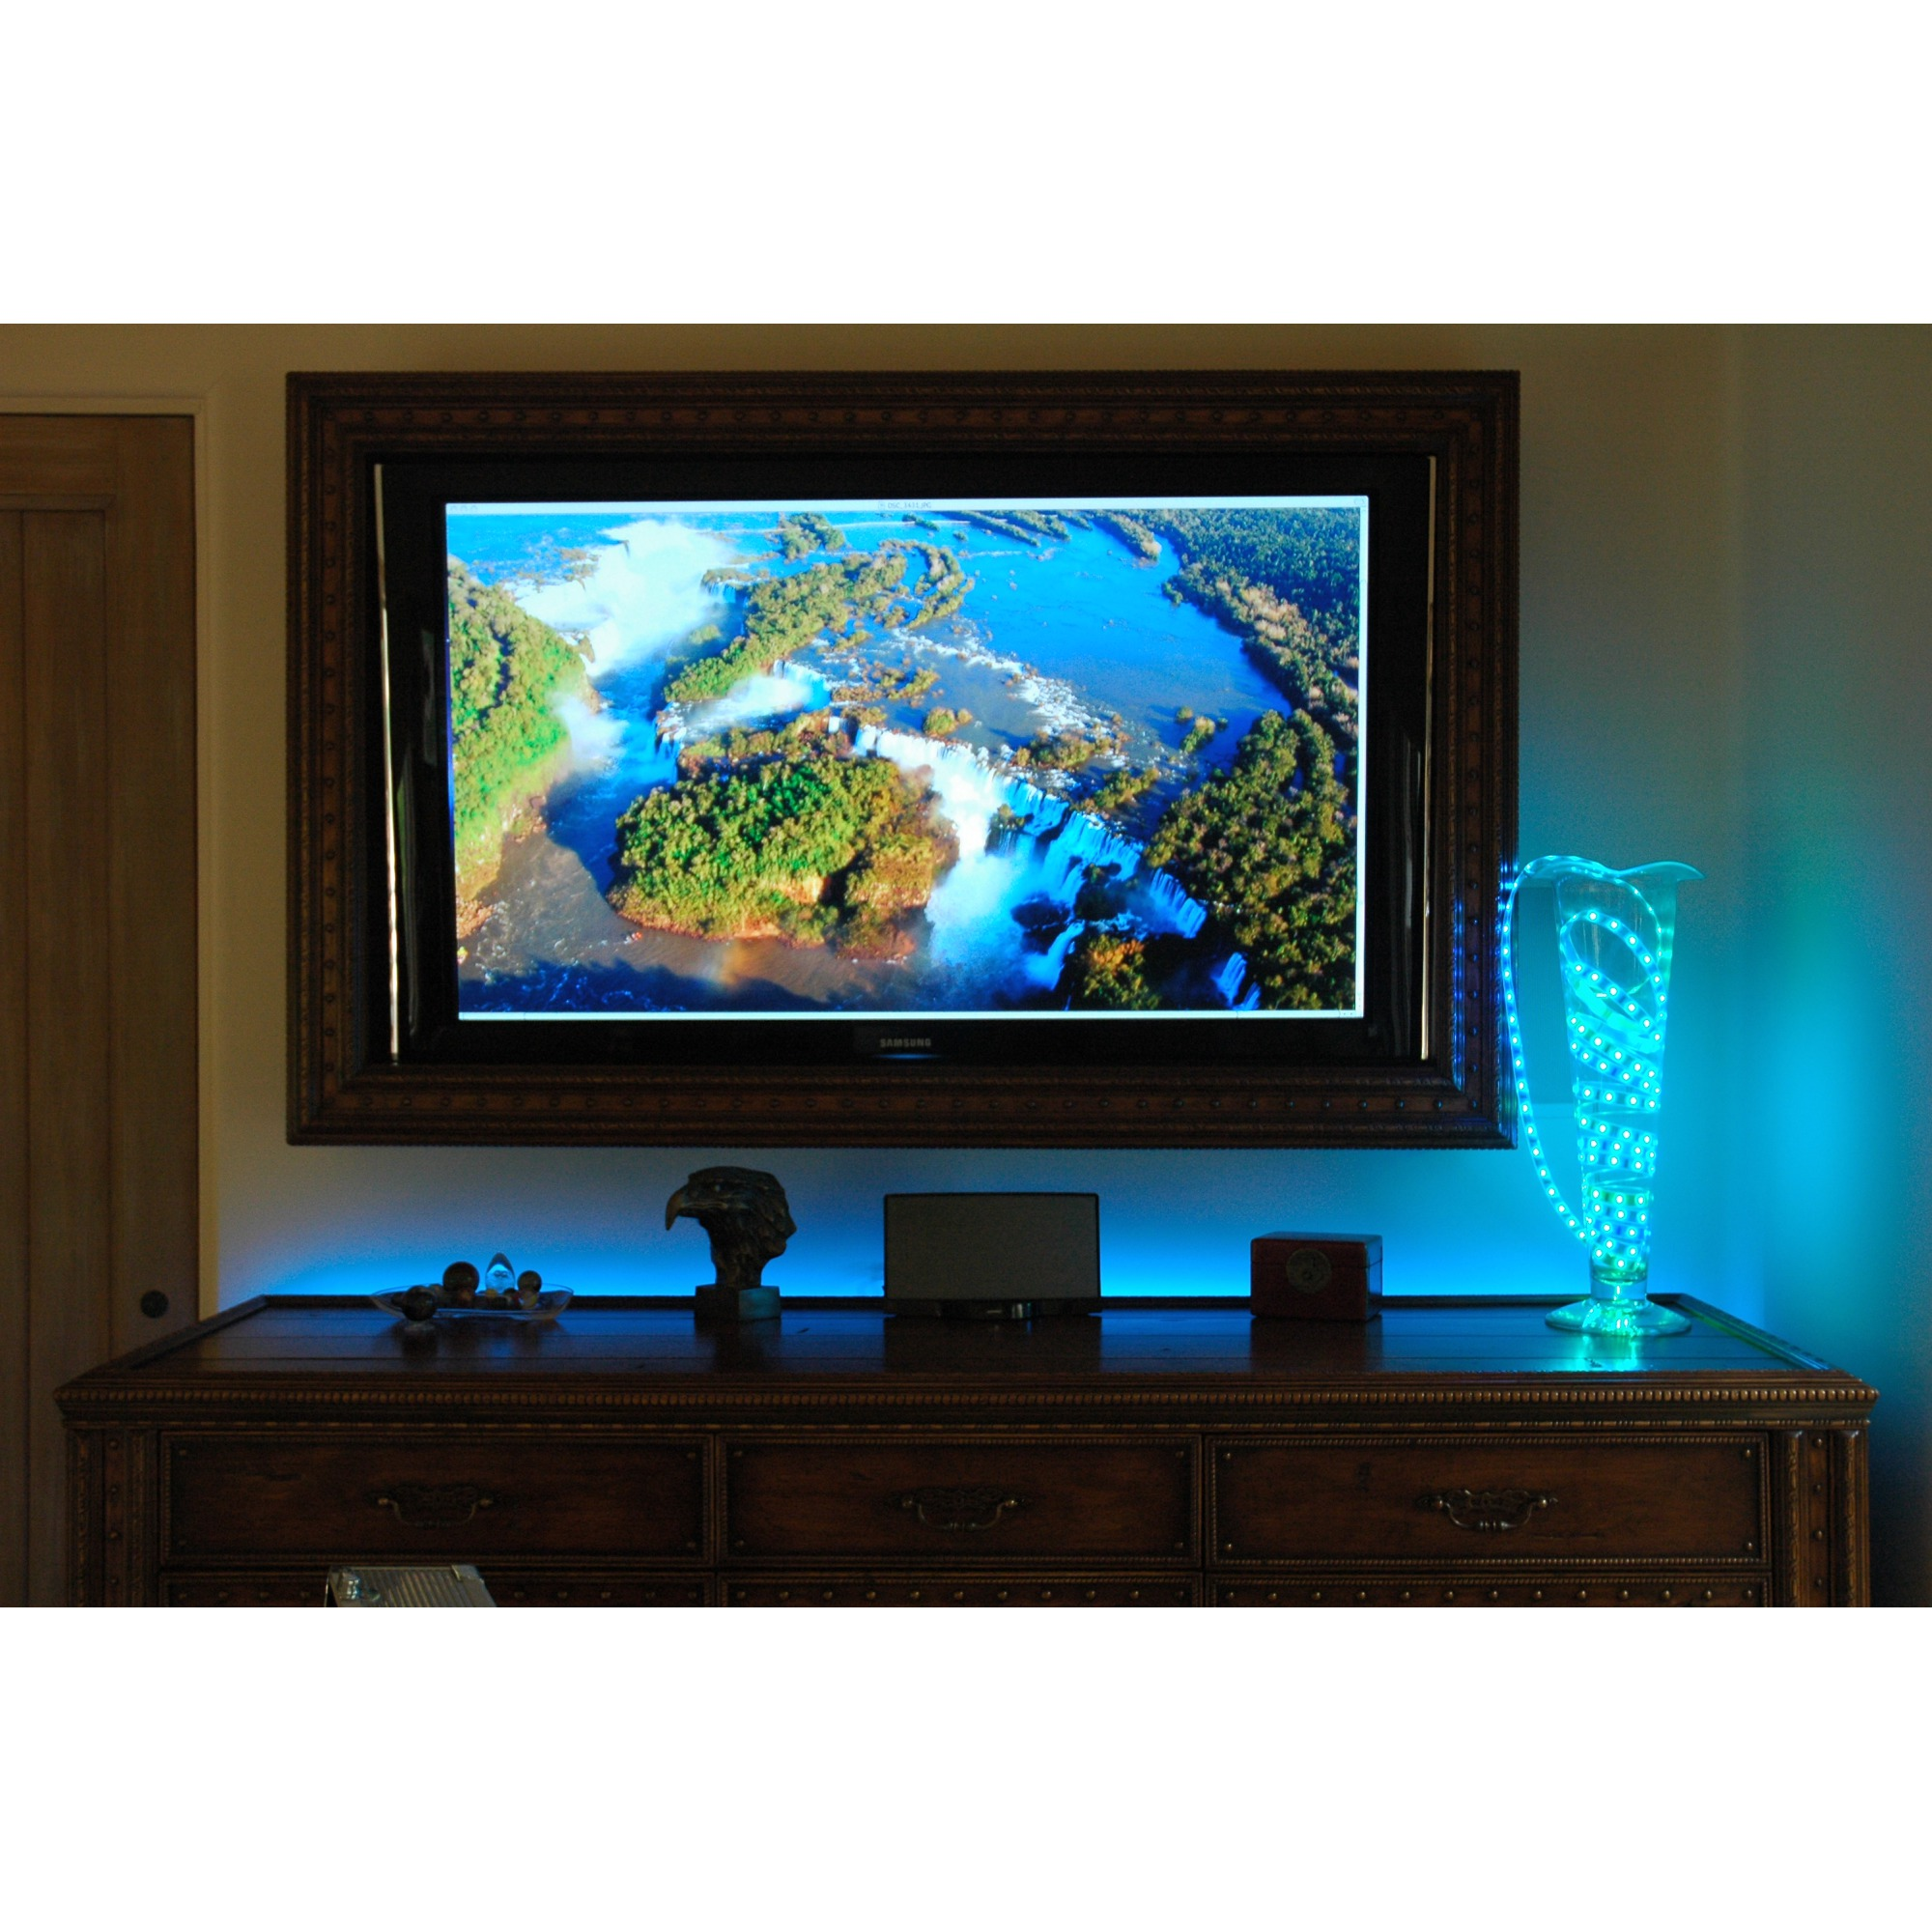 Led color changing strip lights can light up your home image image aloadofball Images